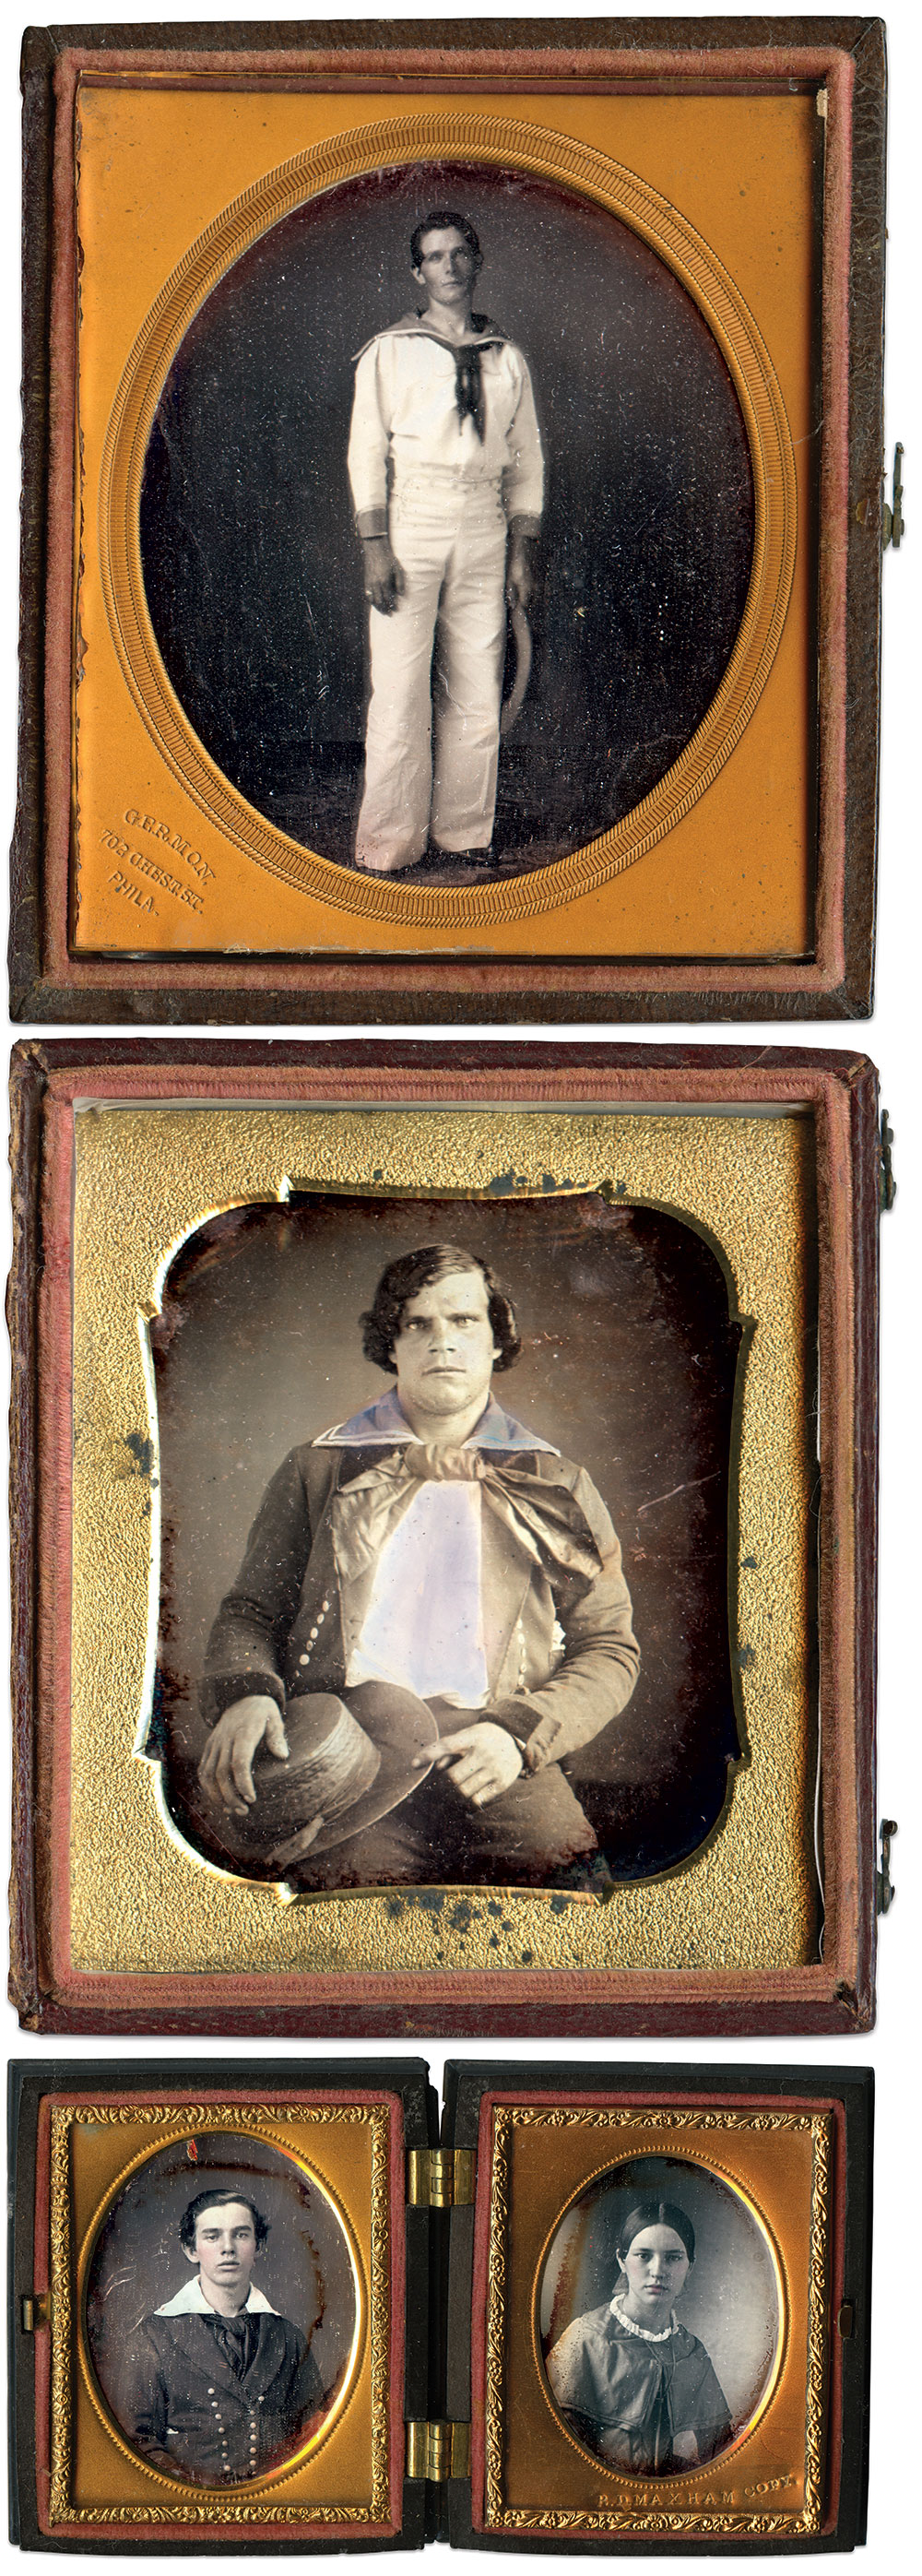 Quarter-plate daguerreotype by Washington L. Germon of Philadelphia, Pa.; Sixth-plate daguerreotype by an anonymous photographer; Ninth-plate daguerreotypes by Tabor & Co. of Boston, Mass., and Benjamin. D. Maxham of Worcester, Mass.